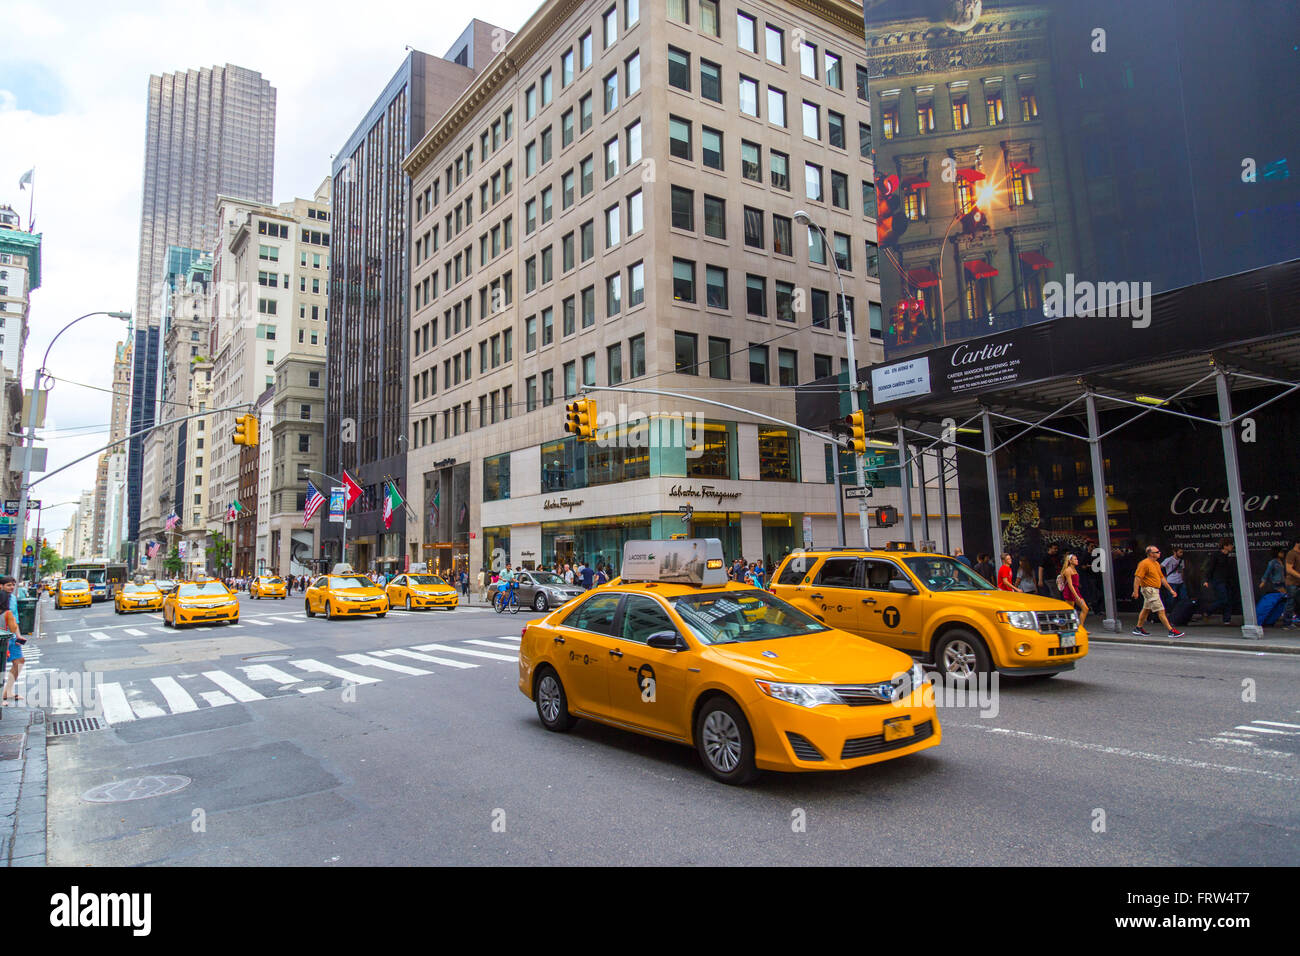 Yellow taxi cabs ride on 5th Avenue in New York City, USA. - Stock Image